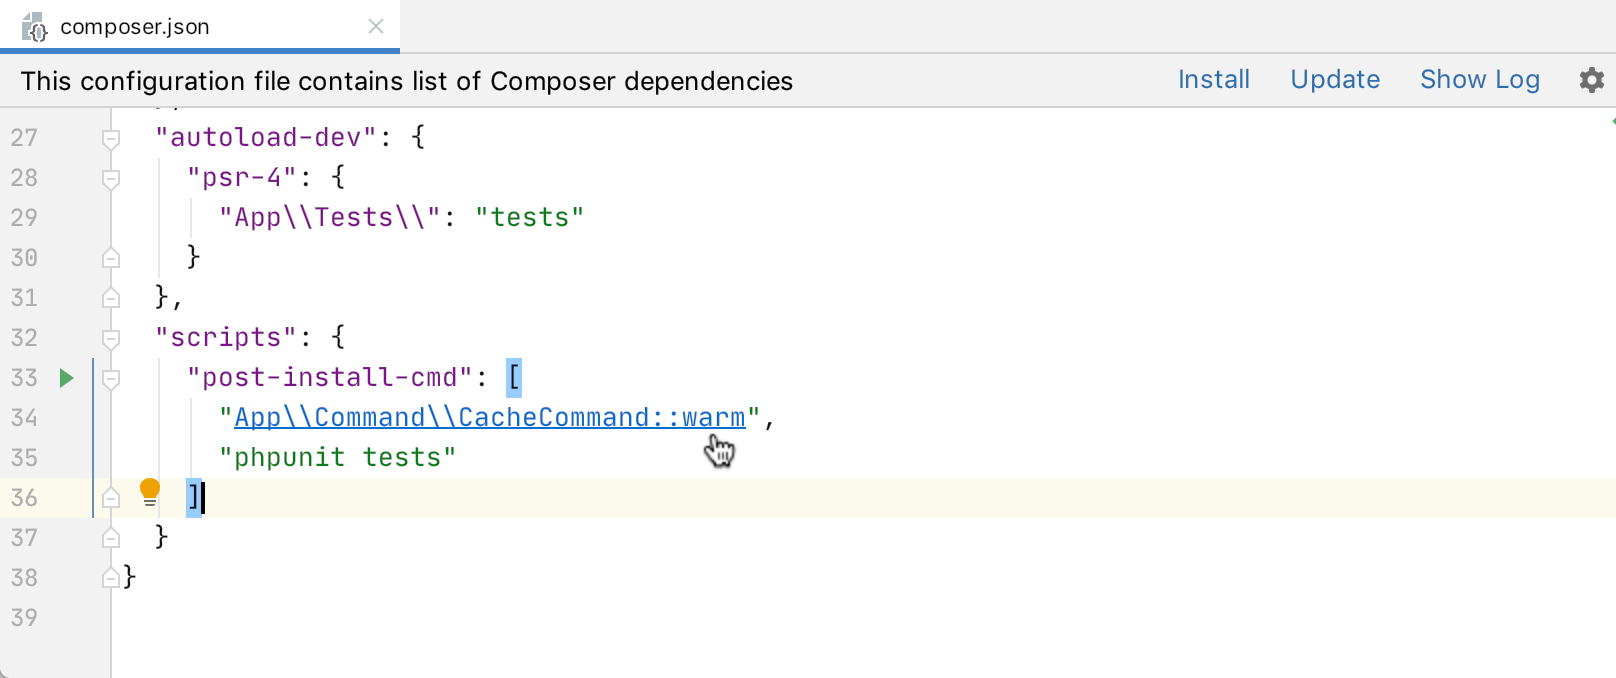 composer-json_scripts_completion@2x